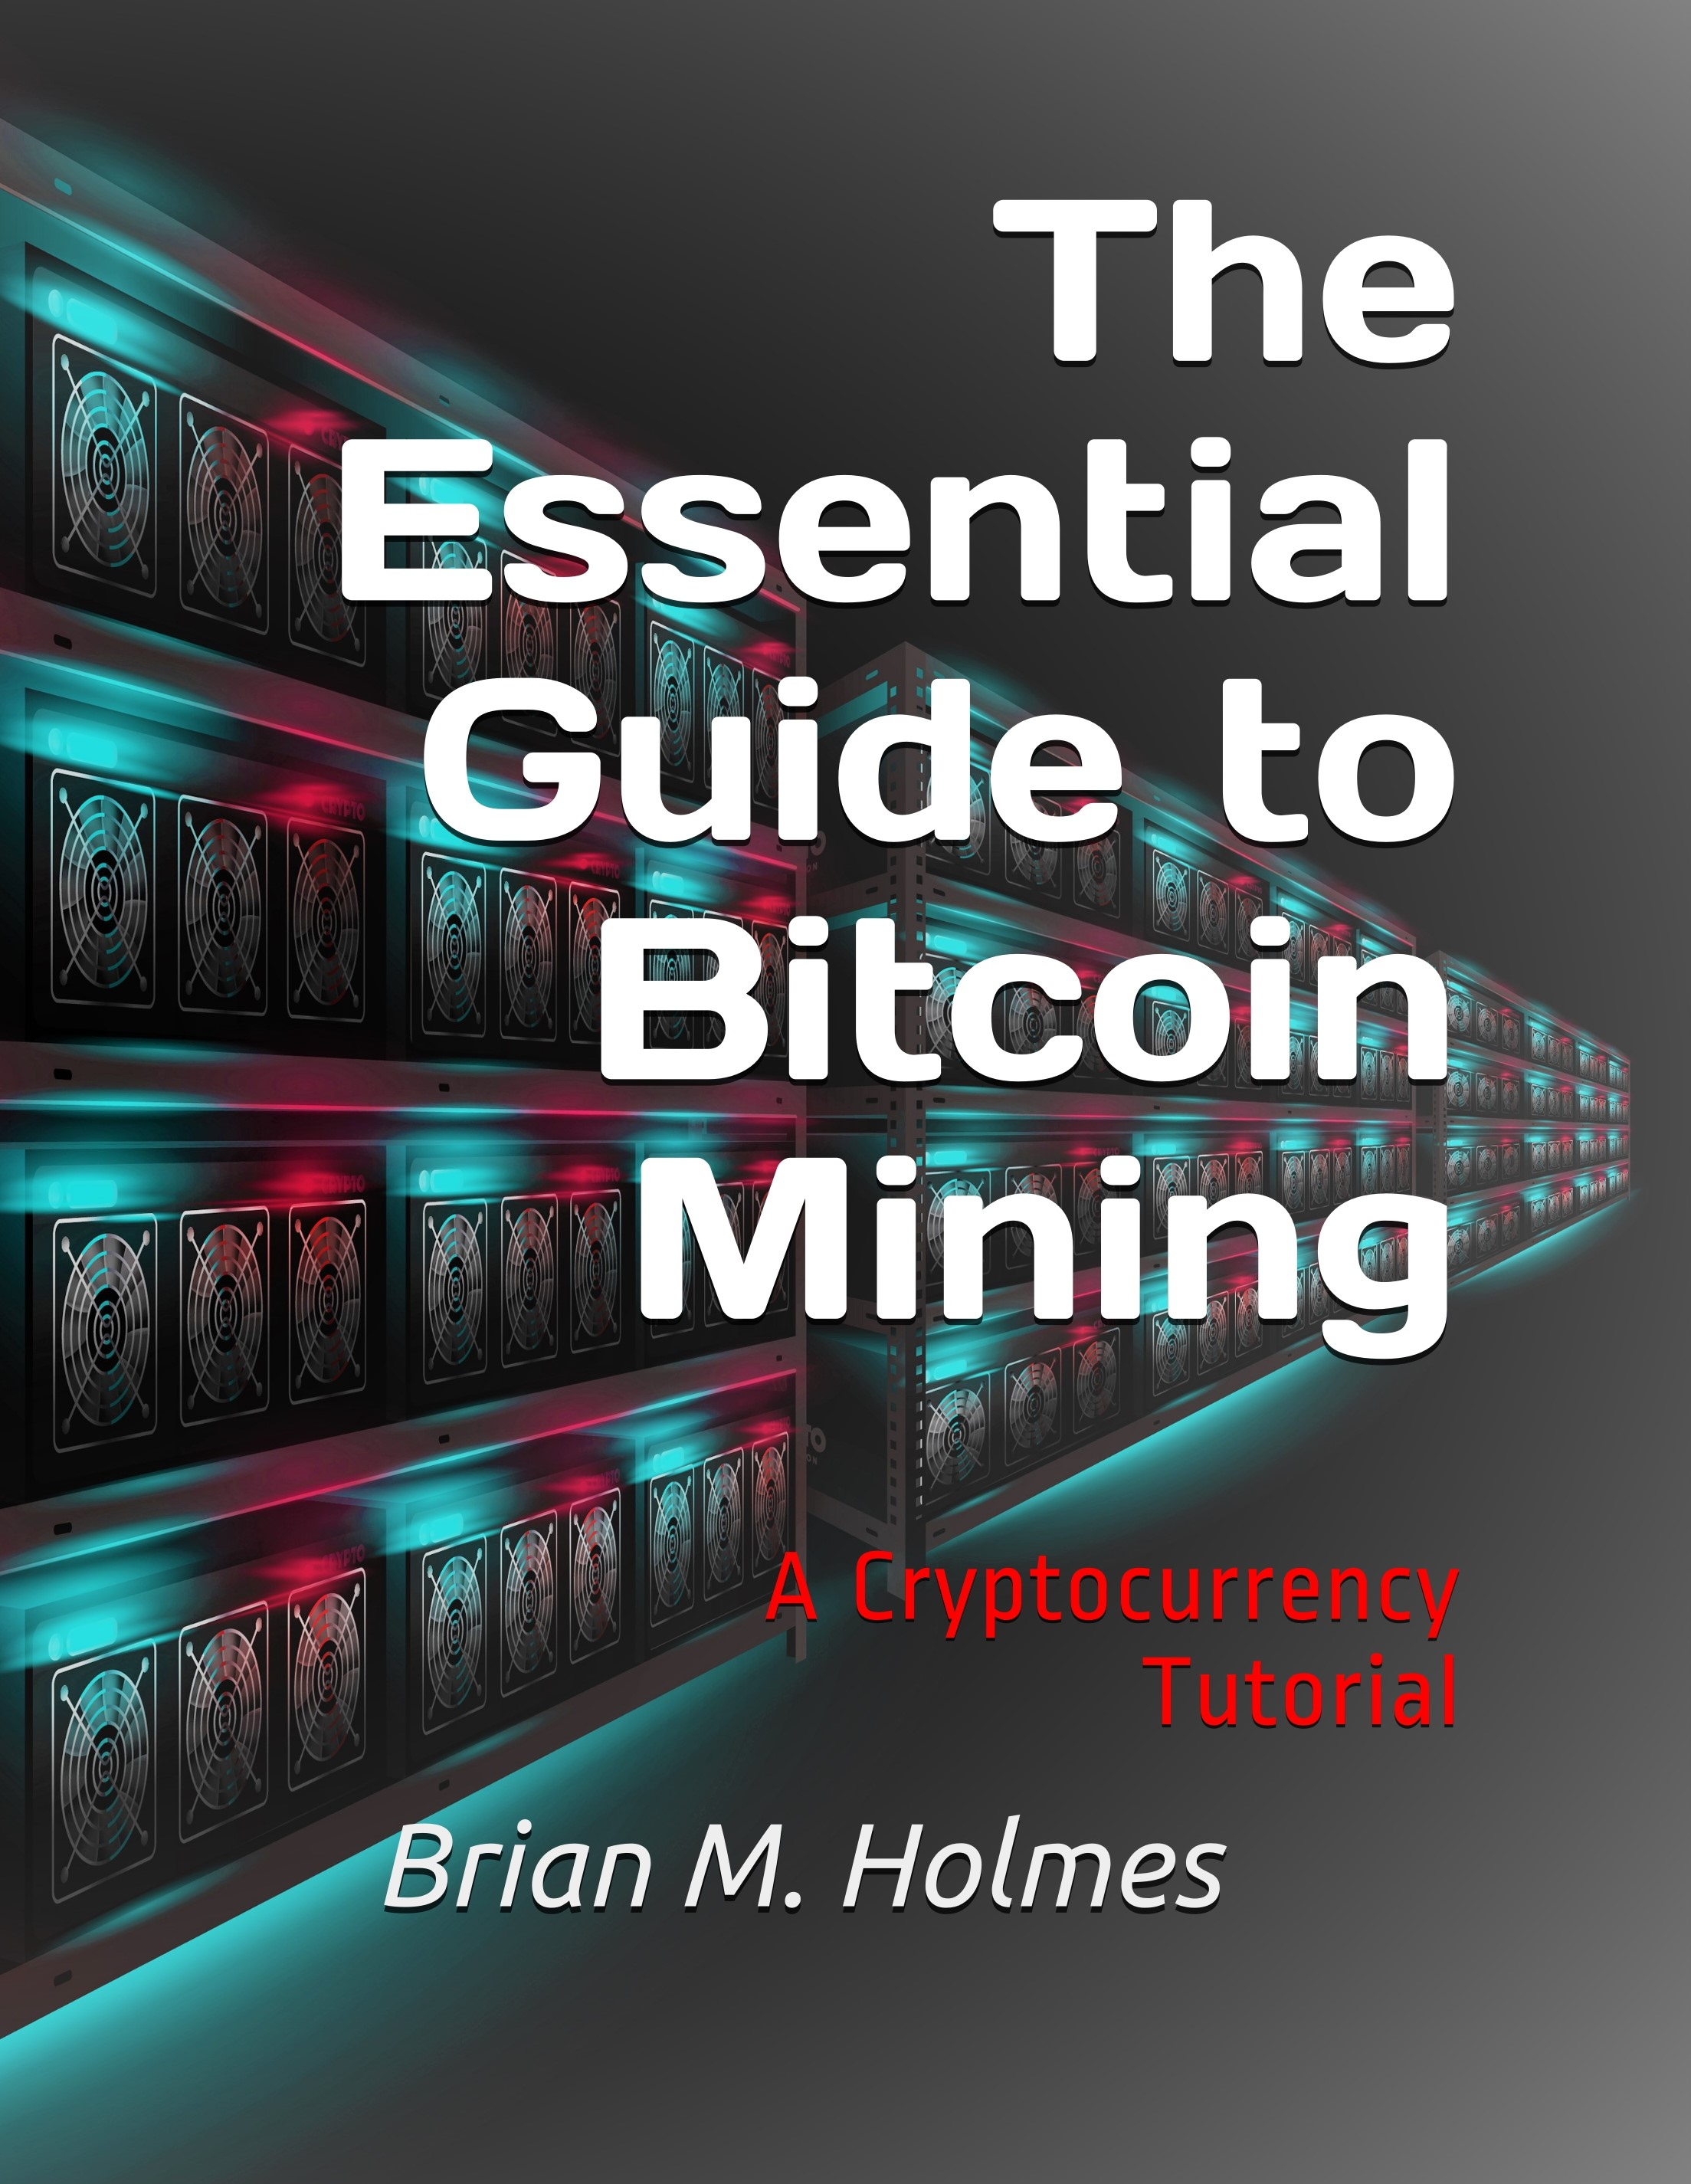 The Essential Guide to Bitcoin Mining